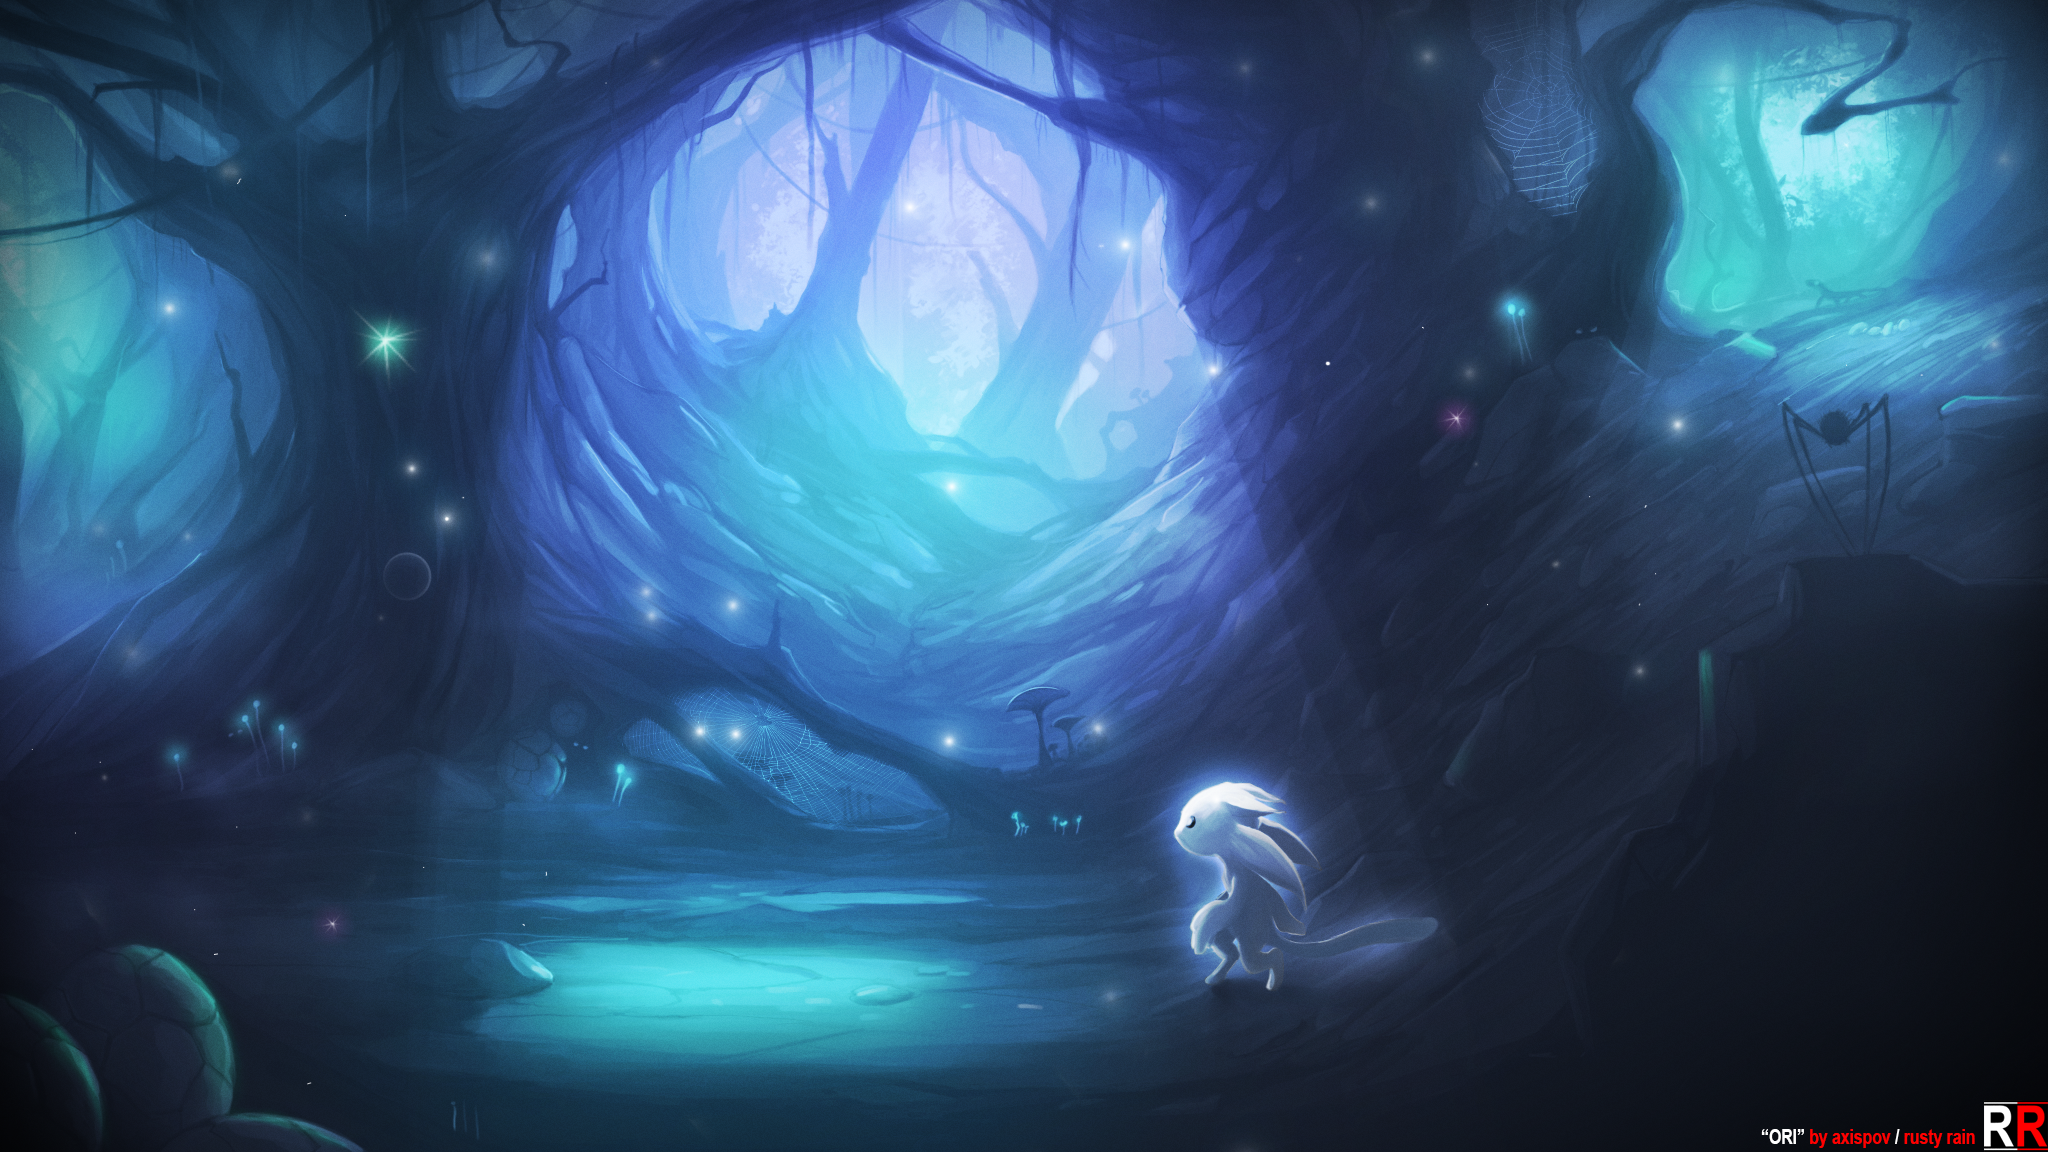 Ori And The Blind Forest Fan Art By Axispov On Deviantart